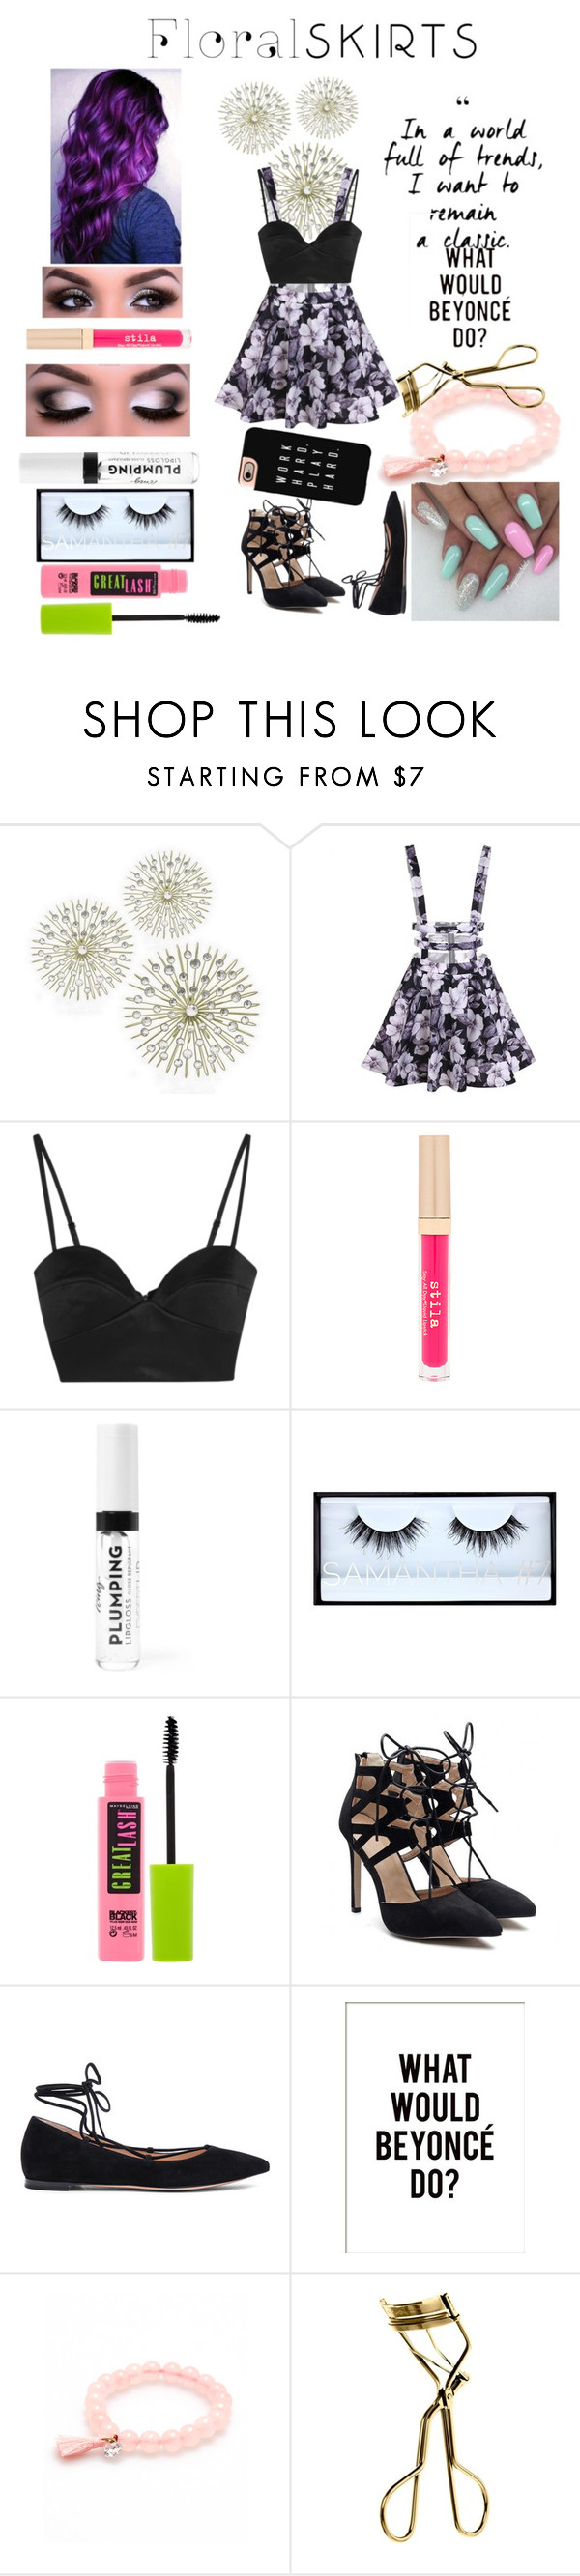 """""""F L O R A L 🌺🌺🌸🌸🌺🌻🌻🌼🌼"""" by moyersk on Polyvore featuring Michael Lo Sordo, Stila, Huda Beauty, Maybelline, Gianvito Rossi, MAC Cosmetics, Casetify and Floralskirts"""